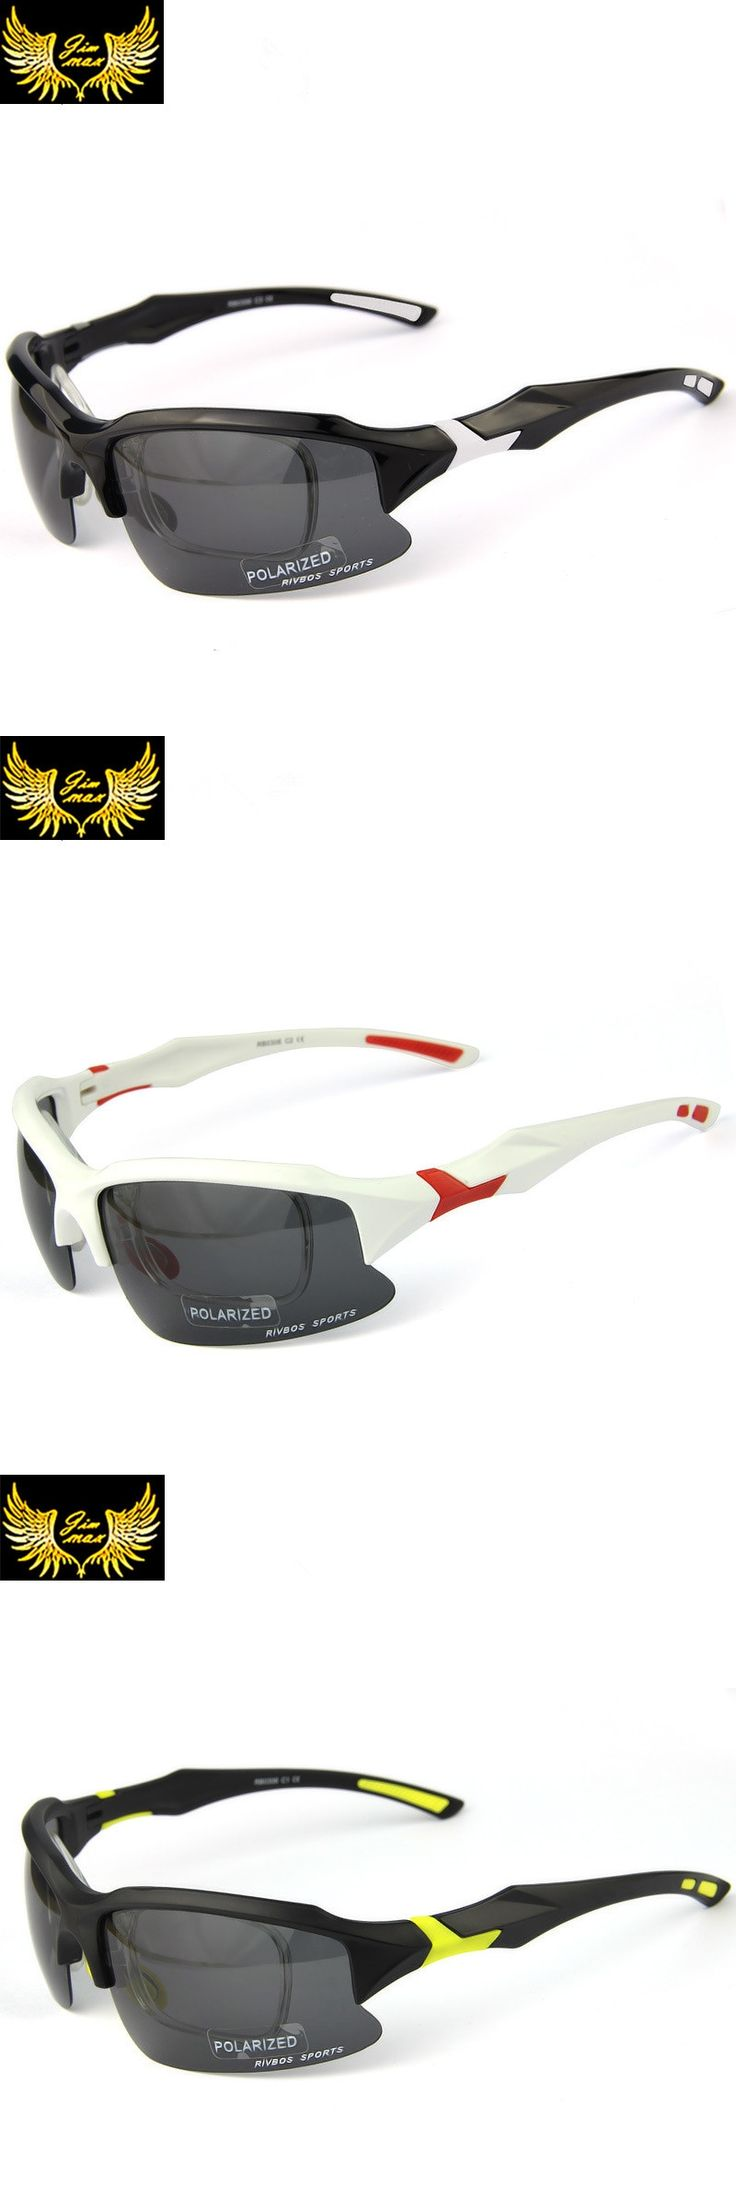 2016 new outdoor polarized men style sports sunglasses polaroid lenses for driving fishing climbing protection goggle